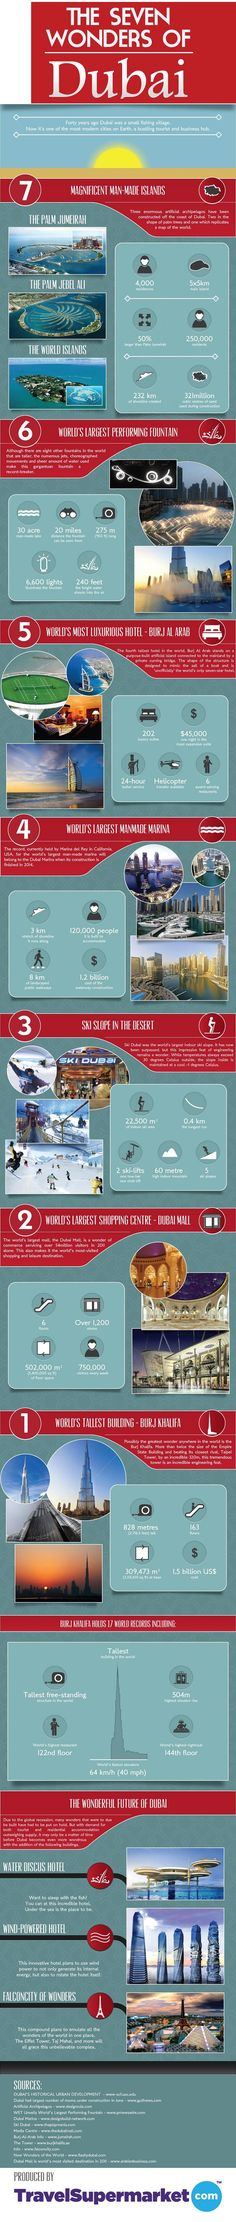 The Seven Wonders of Dubai [INFOGRAPHIC]